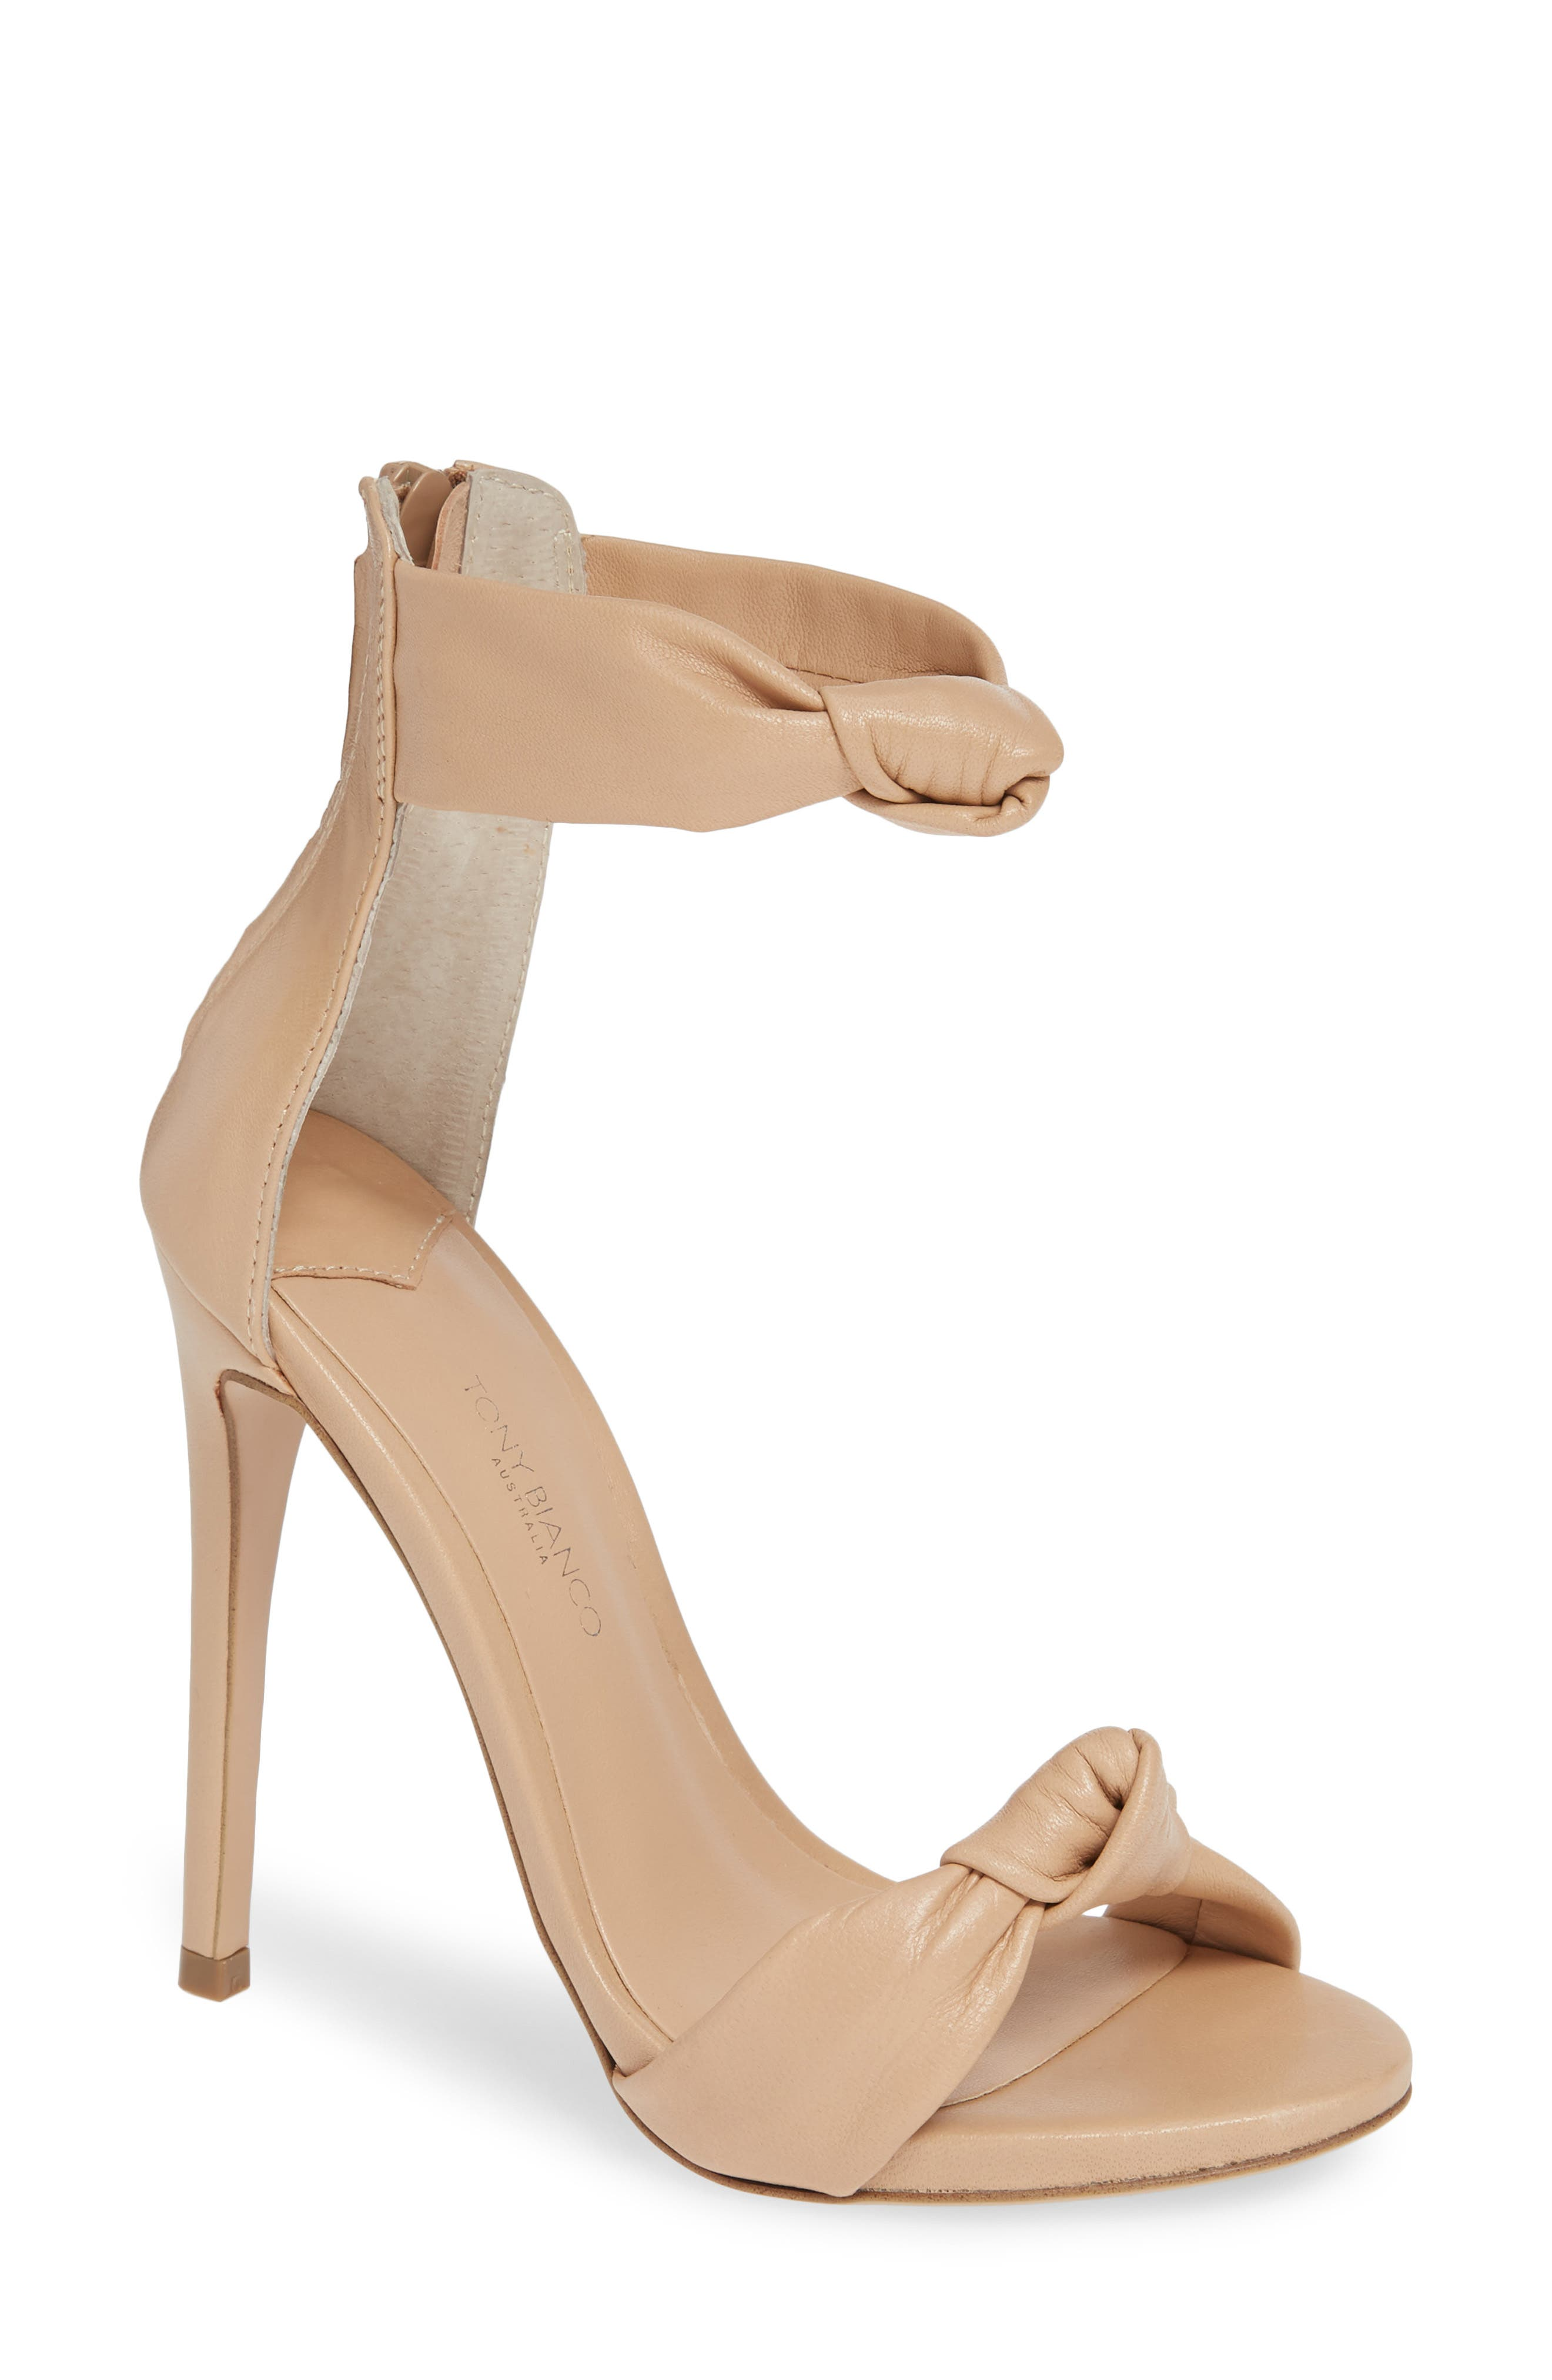 Anabelle Sandal,                         Main,                         color, BEIGE LEATHER